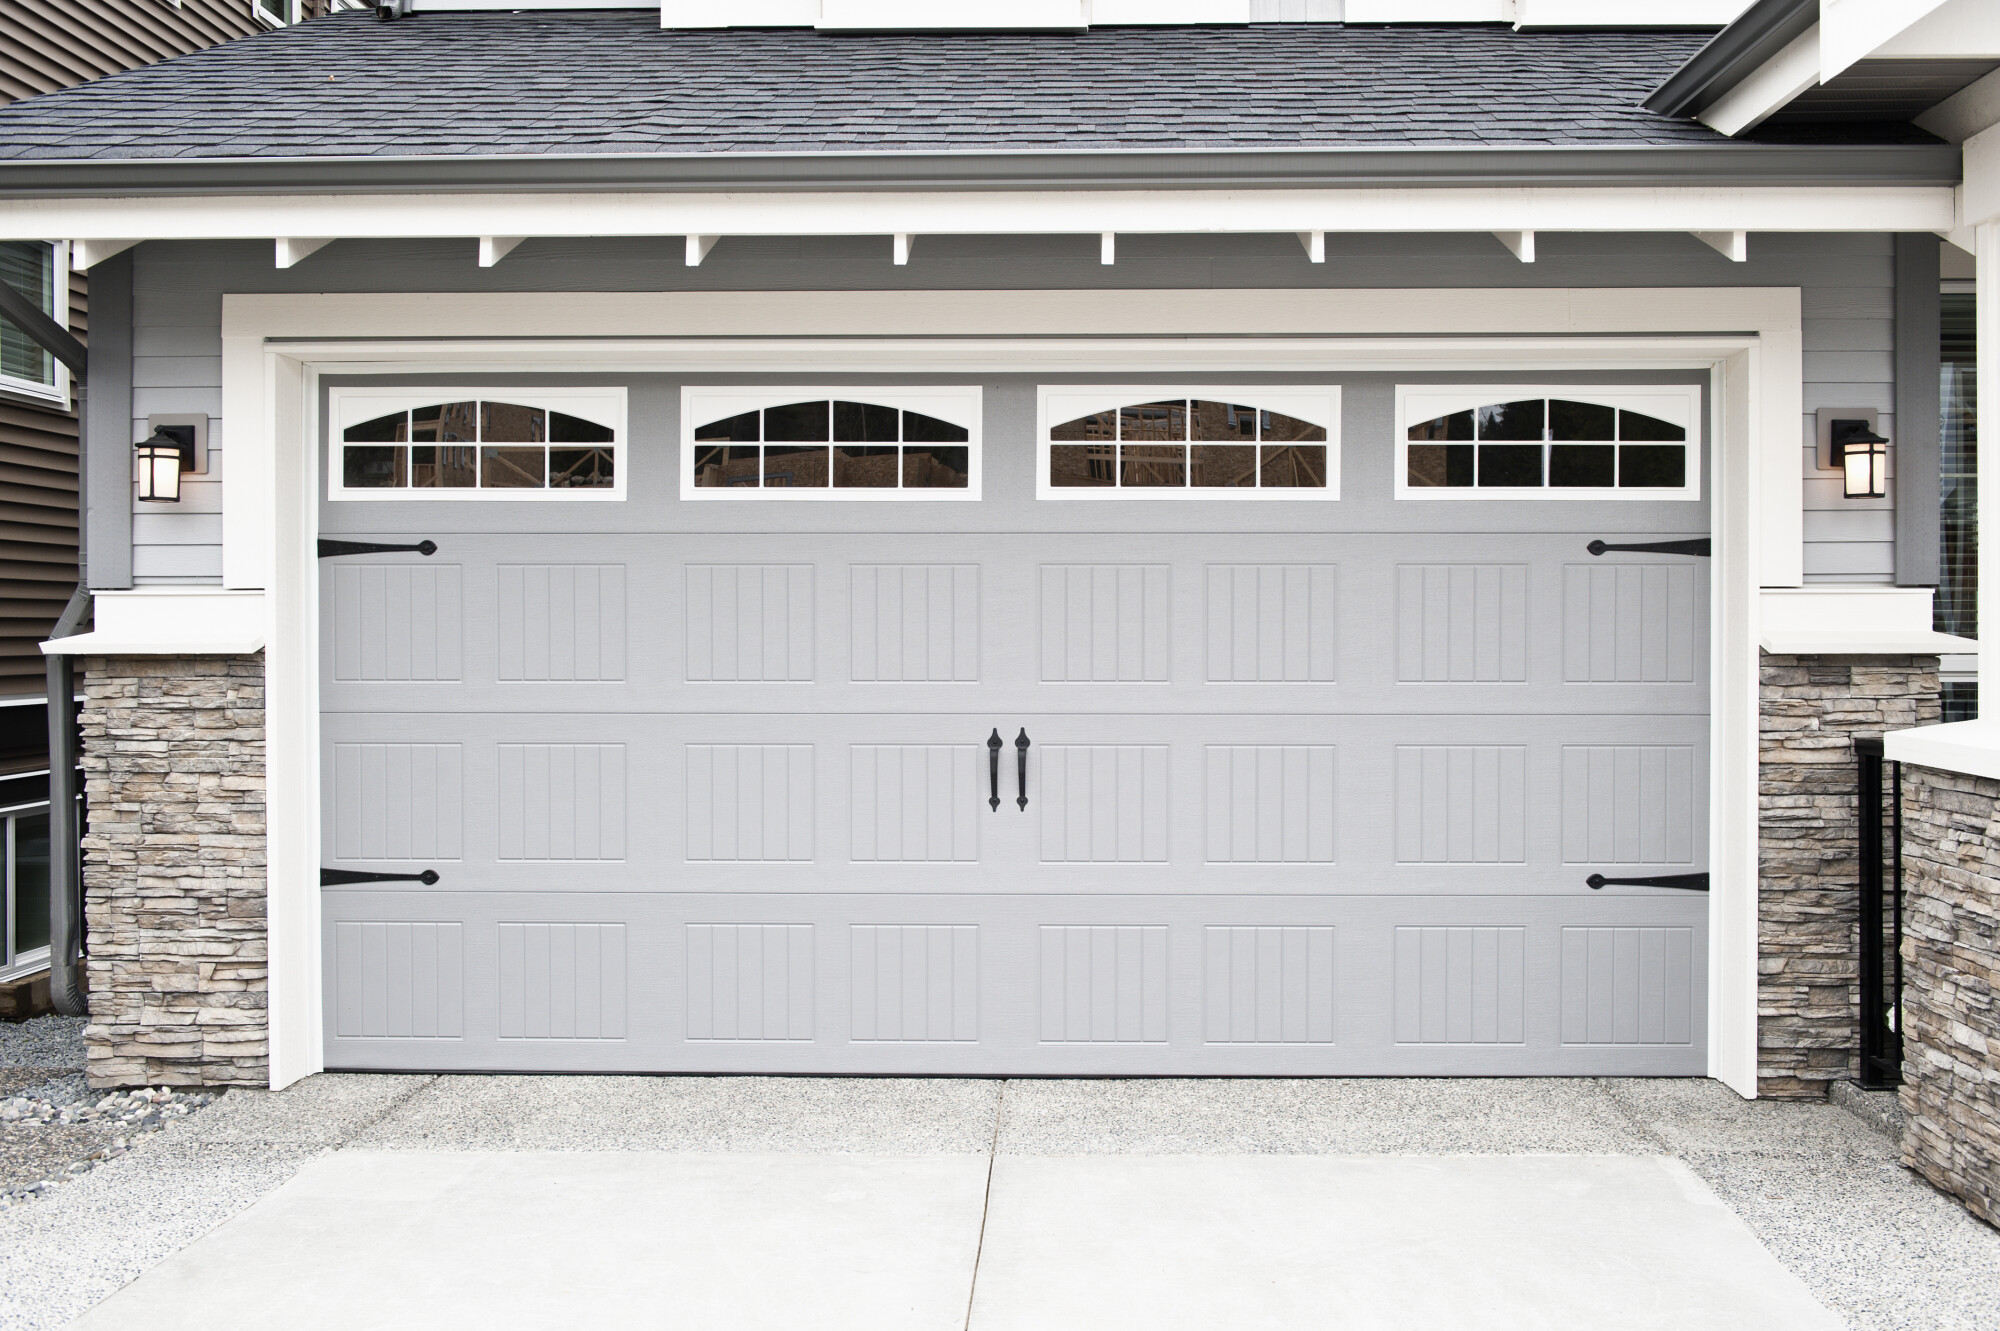 What You Should Know About the Garage Door Installation Price